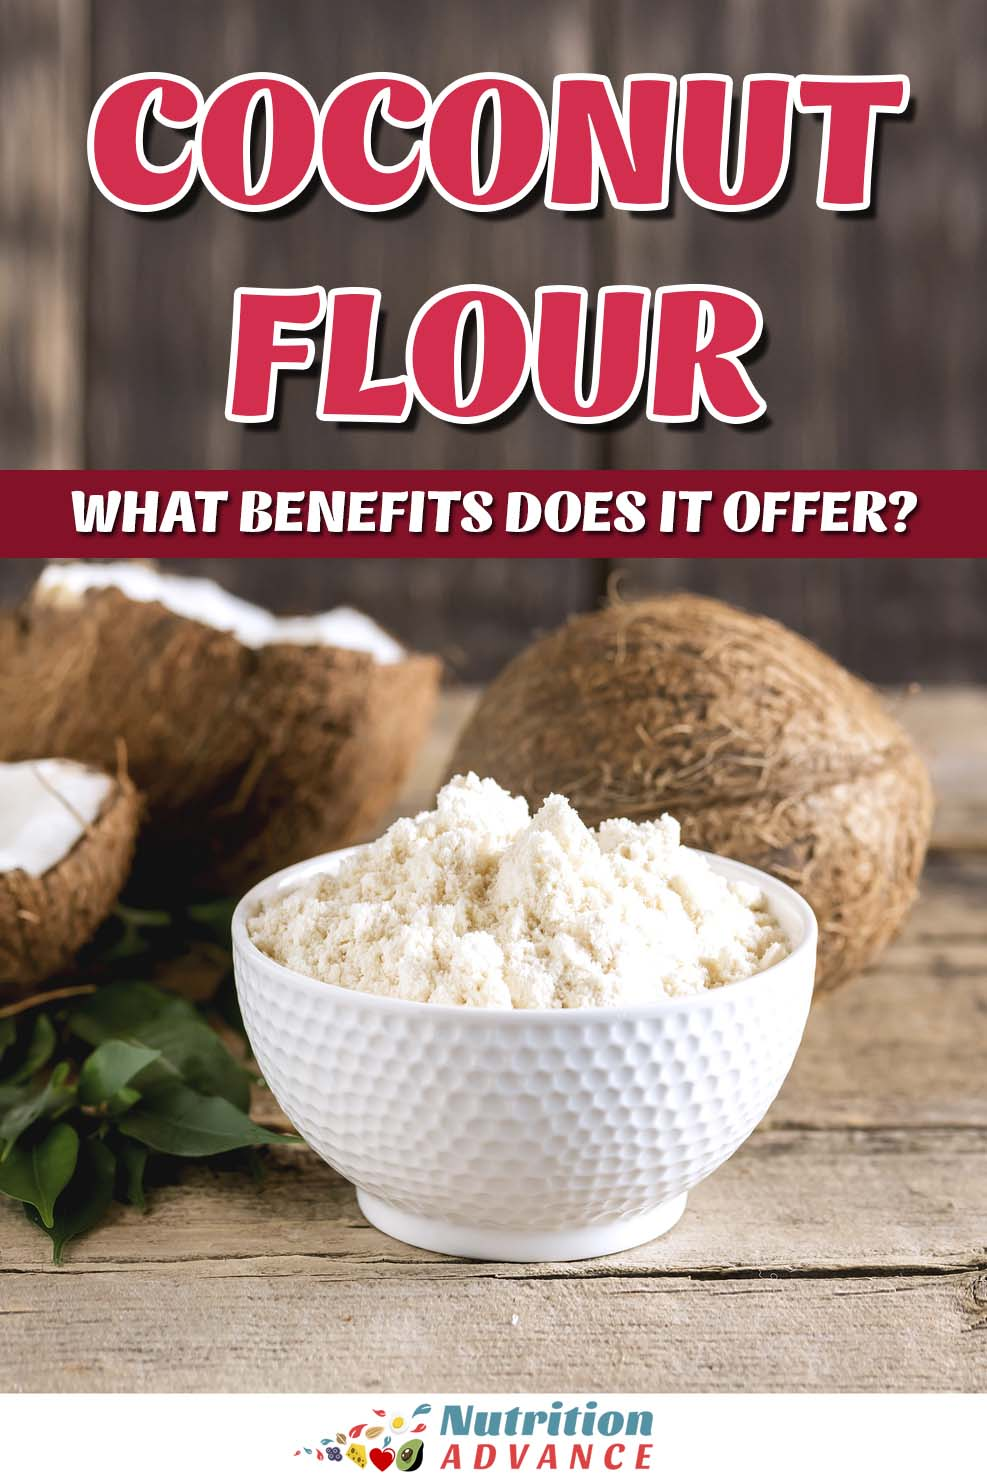 Coconut Flour: Nutrition Benefits, Drawbacks, and How To Use It